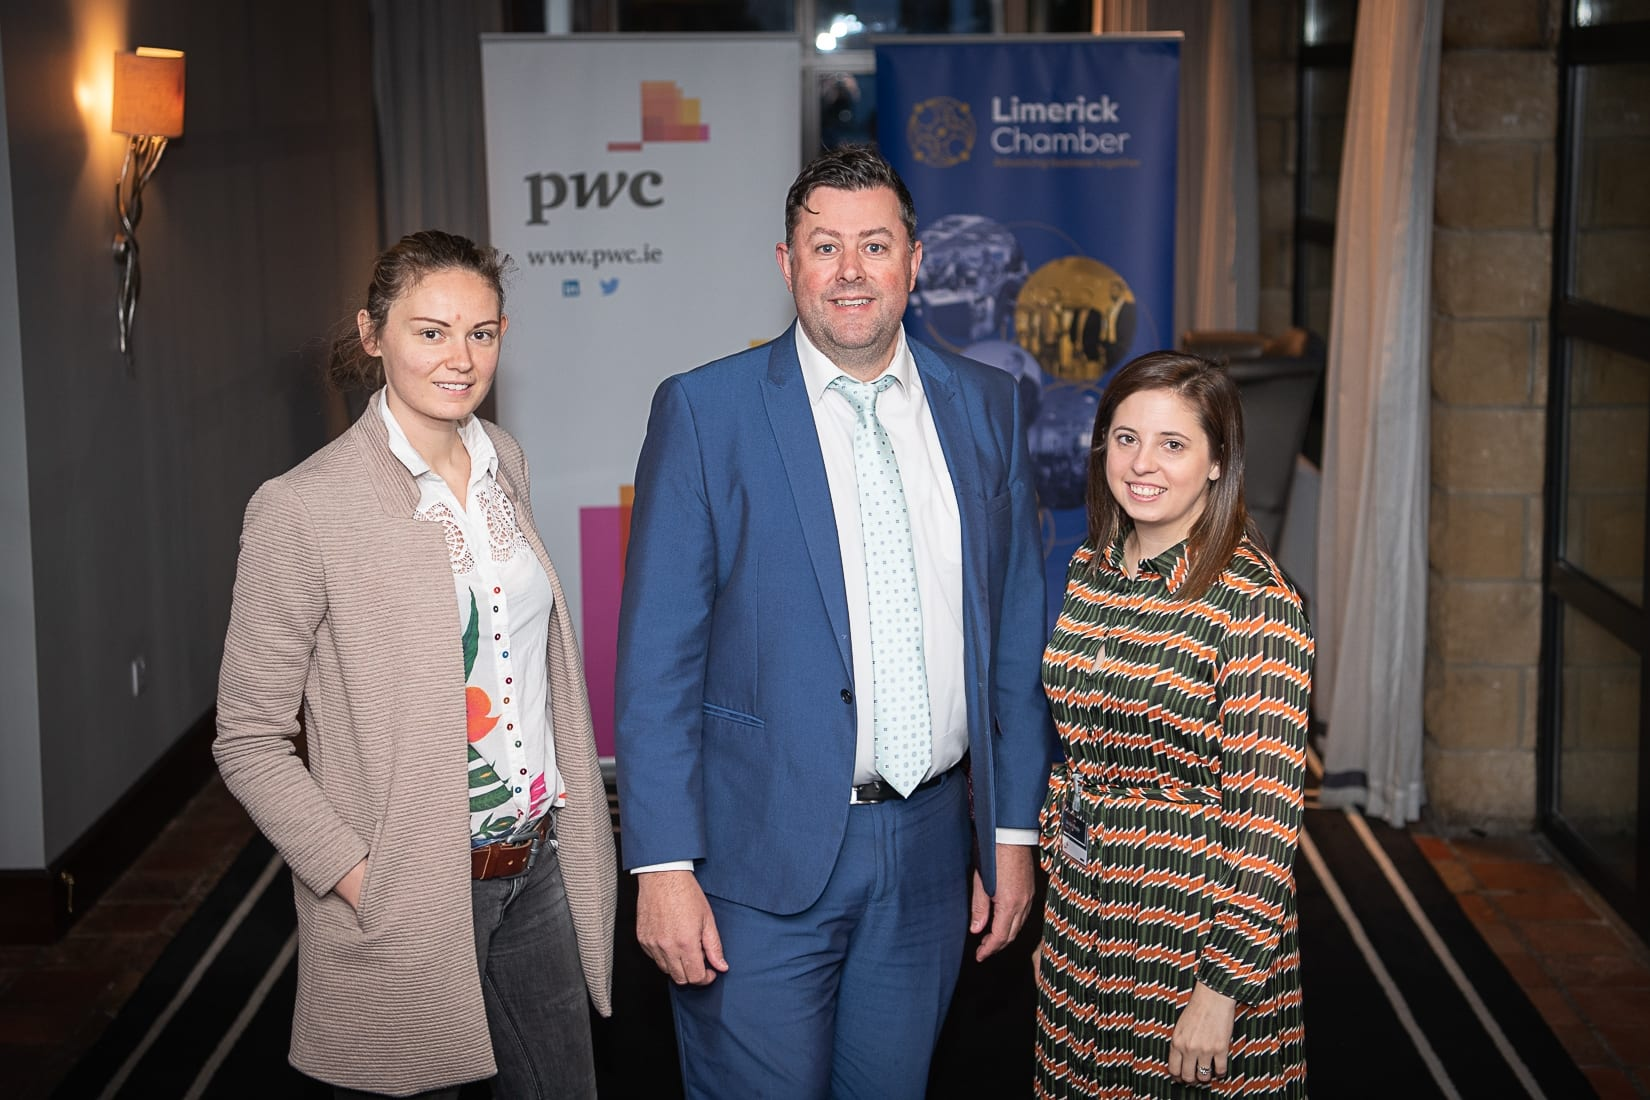 PWC Budget Breakfast in association with the Limerick Chamber which took place in the Castletroy Park Hotel on 9th October 2019, from left to right: Karolina Mazurek - Design Pro Automation, Patrick O'Sullivan - Sales Dynamics, Deirdre Sankar - PWC Photo by Morning Star Photography